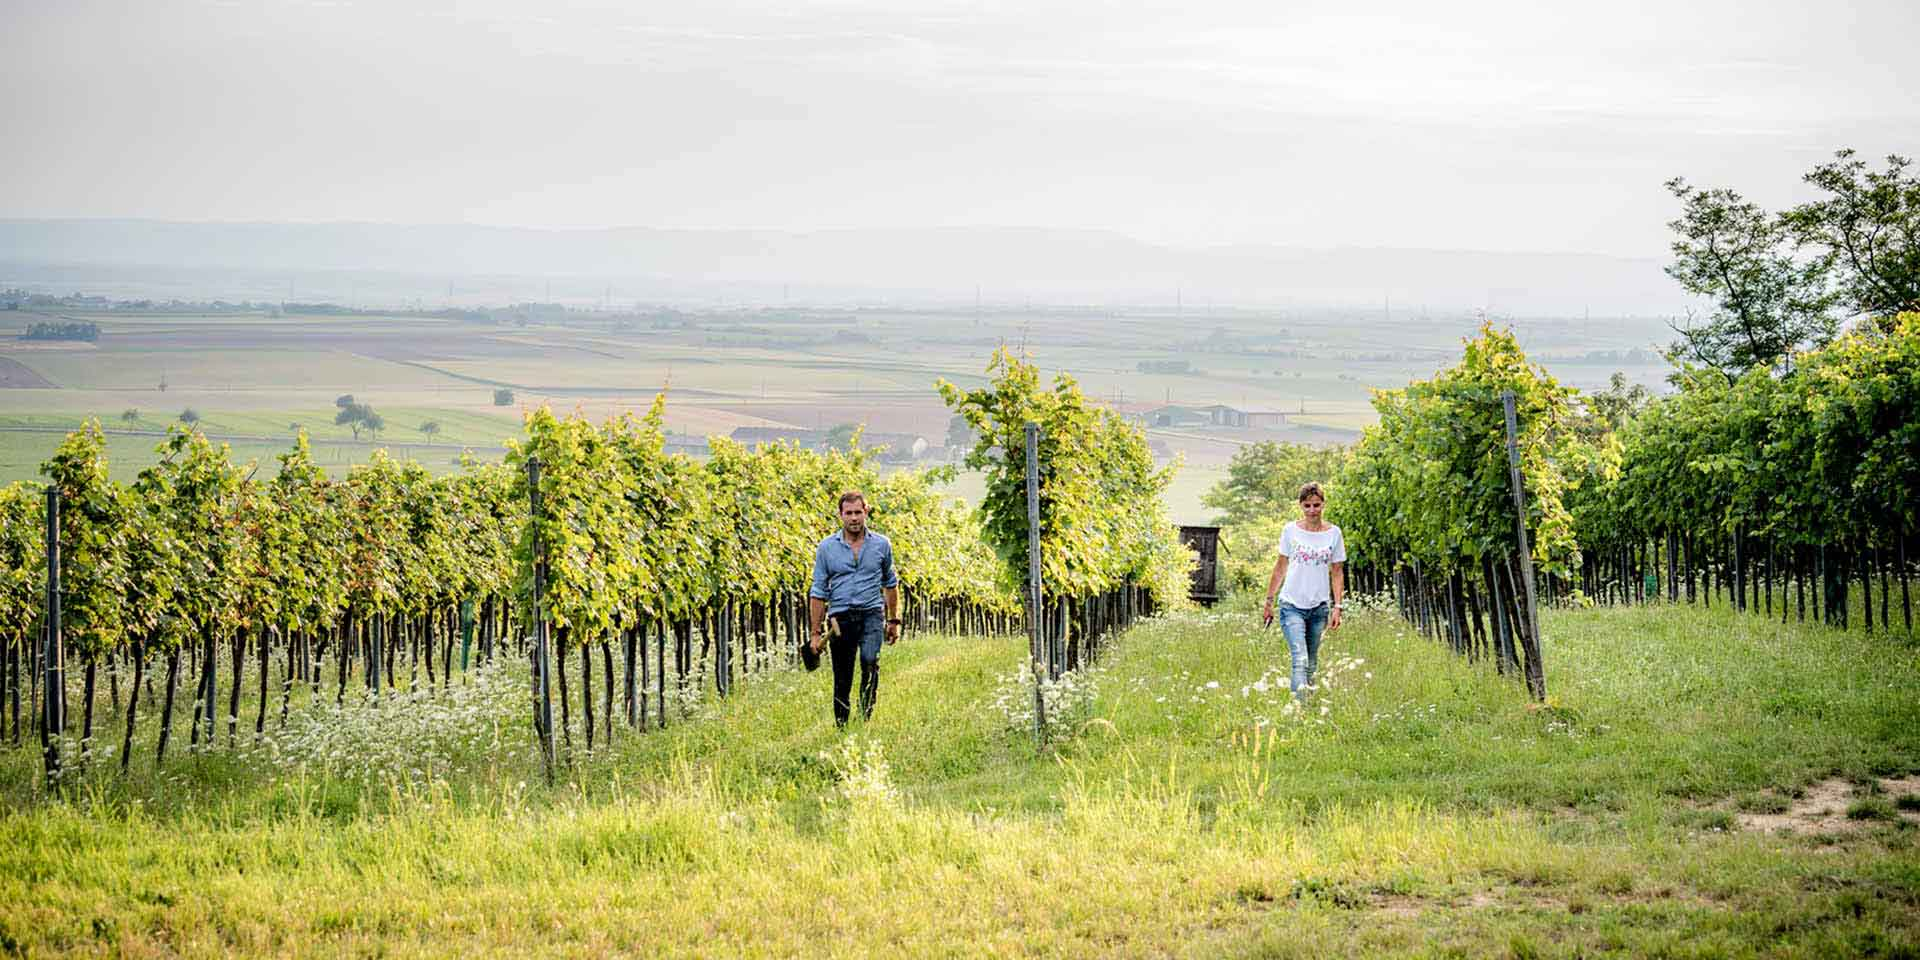 The Grüner (Green) Veltliner matures into hearty, spicy wines. He leads the range of white wines that combine substance and drinking pleasure. Some of the richest red wines in Lower Austria can also be found here.